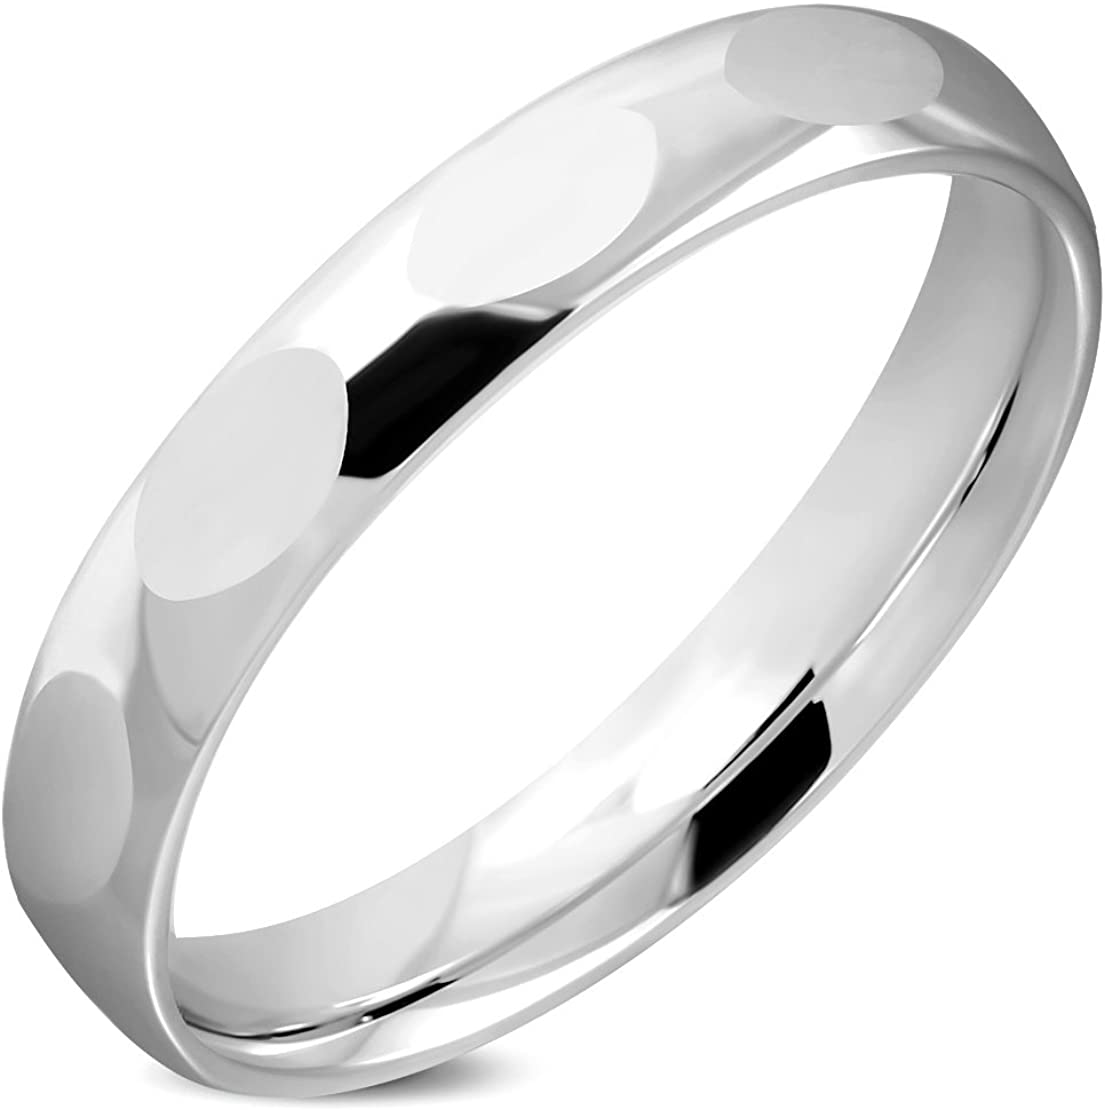 Stainless Steel Faceted Comfort Fit Half-Round Wedding Band Ring